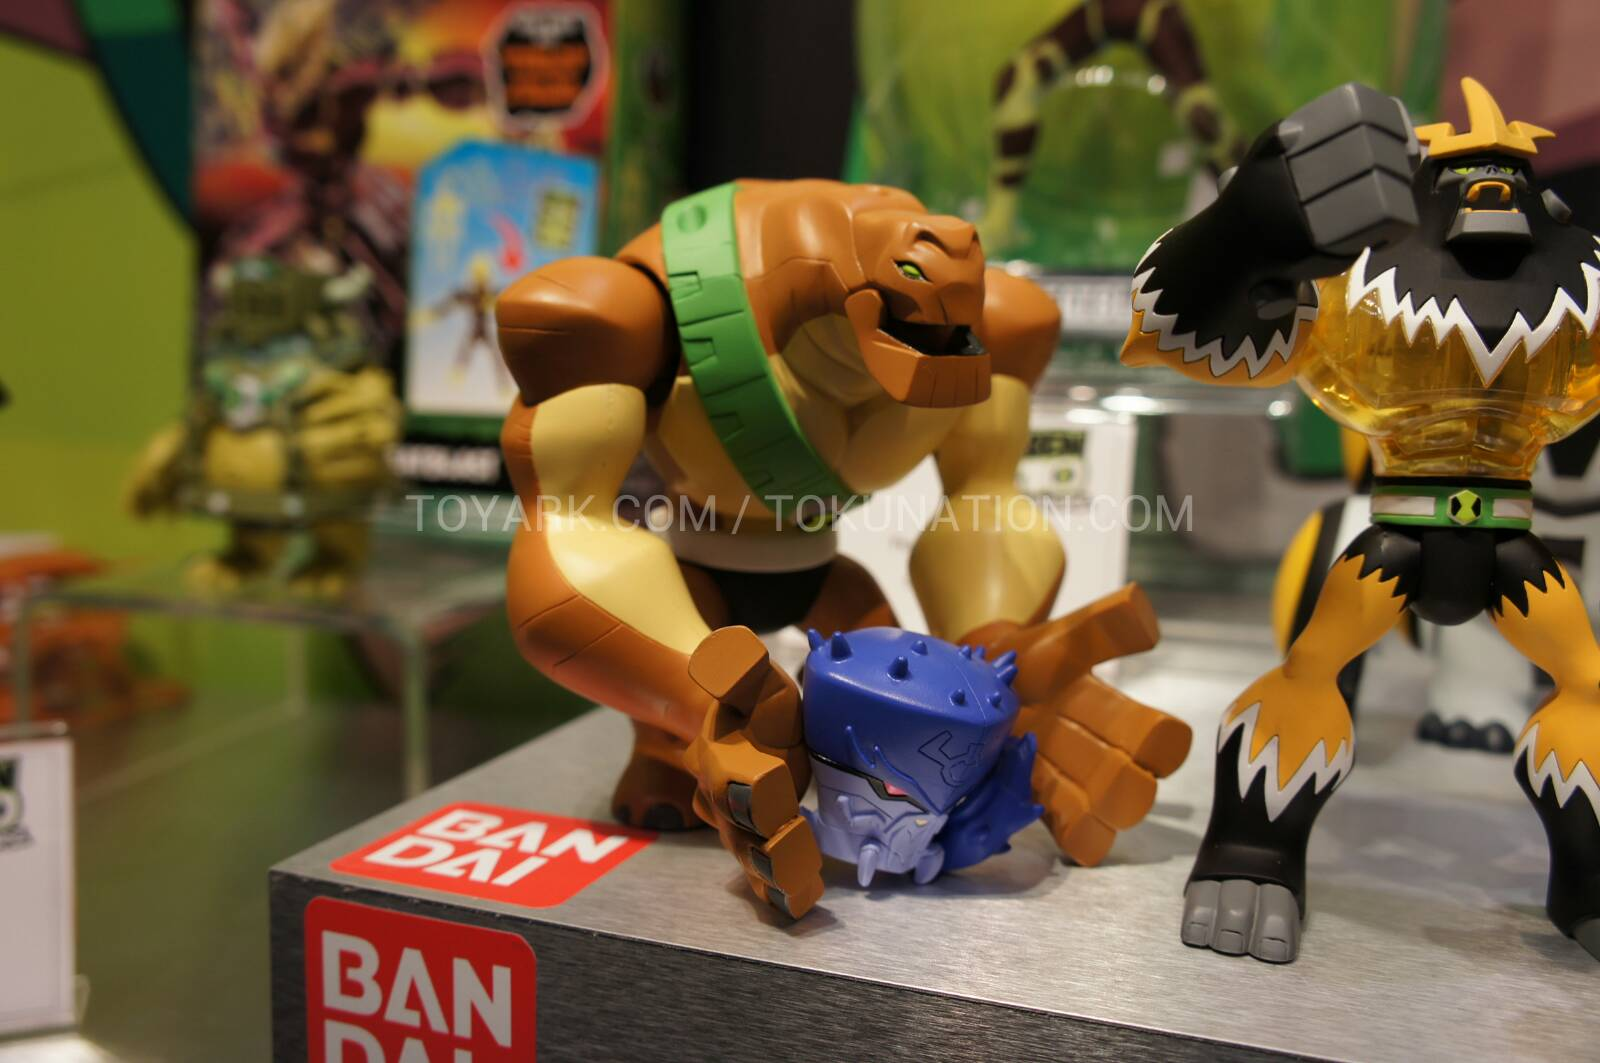 Ben 10 Upgrade Toy Show full sized